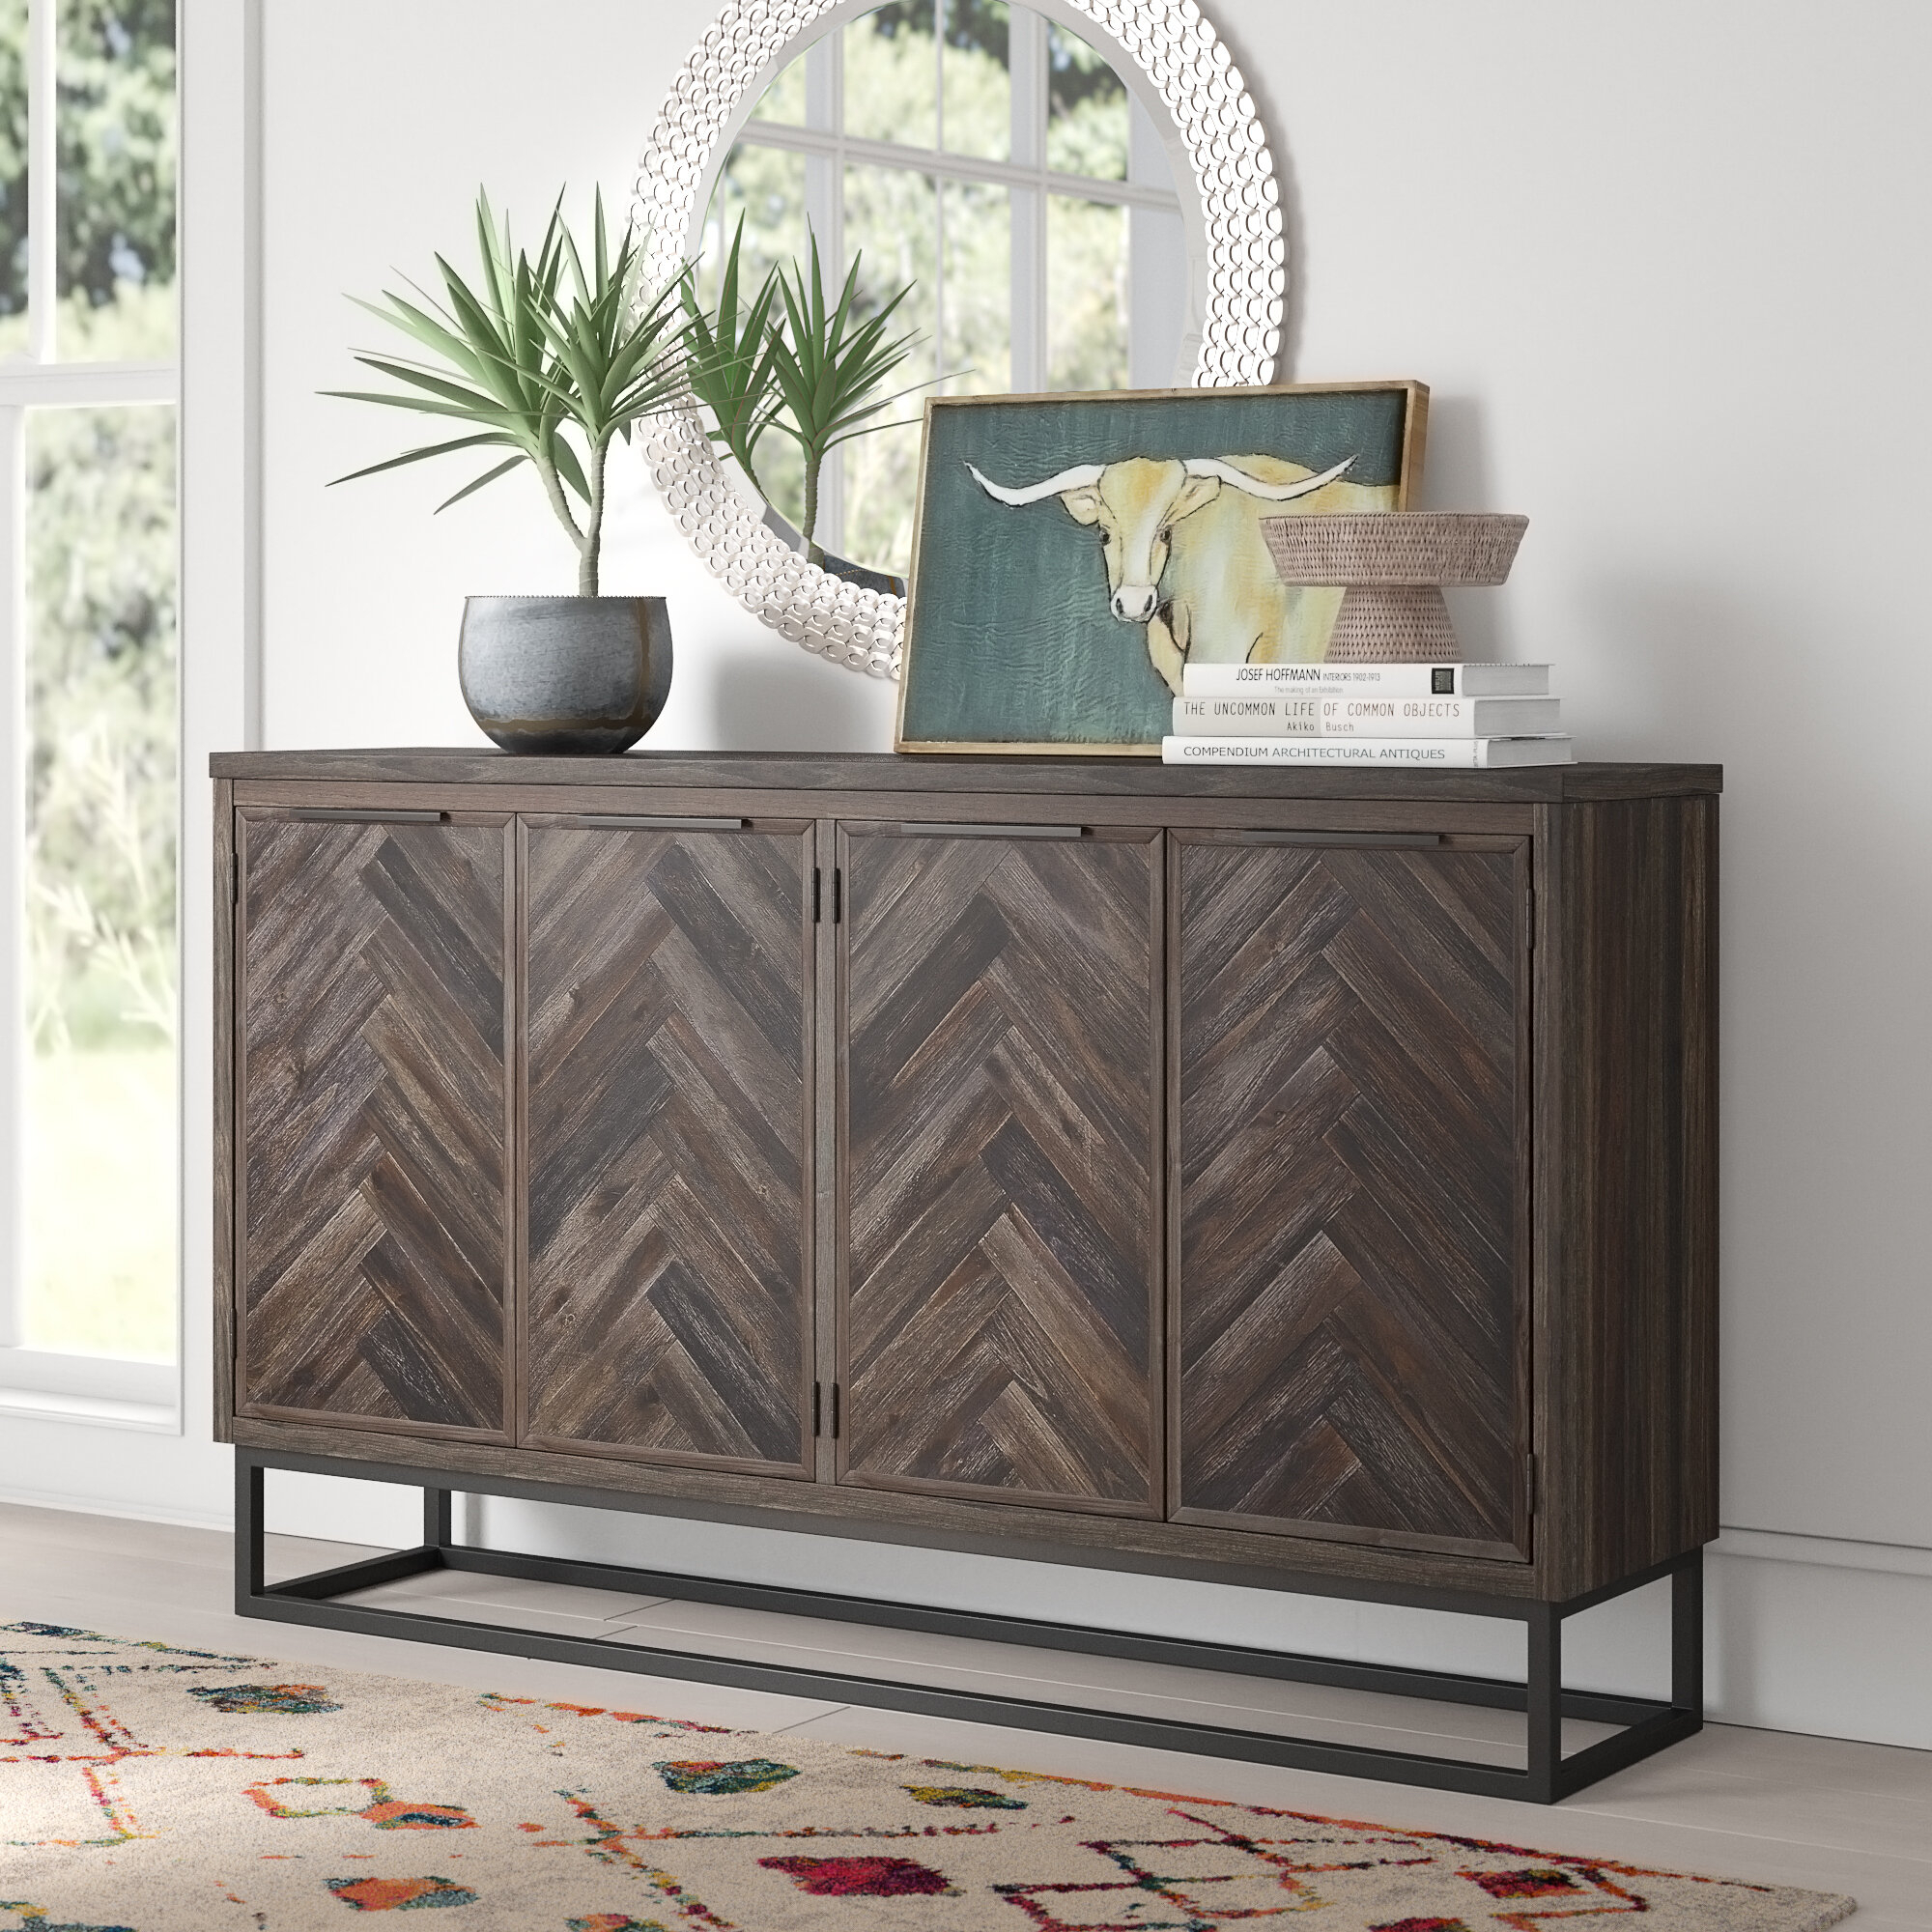 Narrow Credenza | Wayfair In Elyza Credenzas (View 17 of 30)